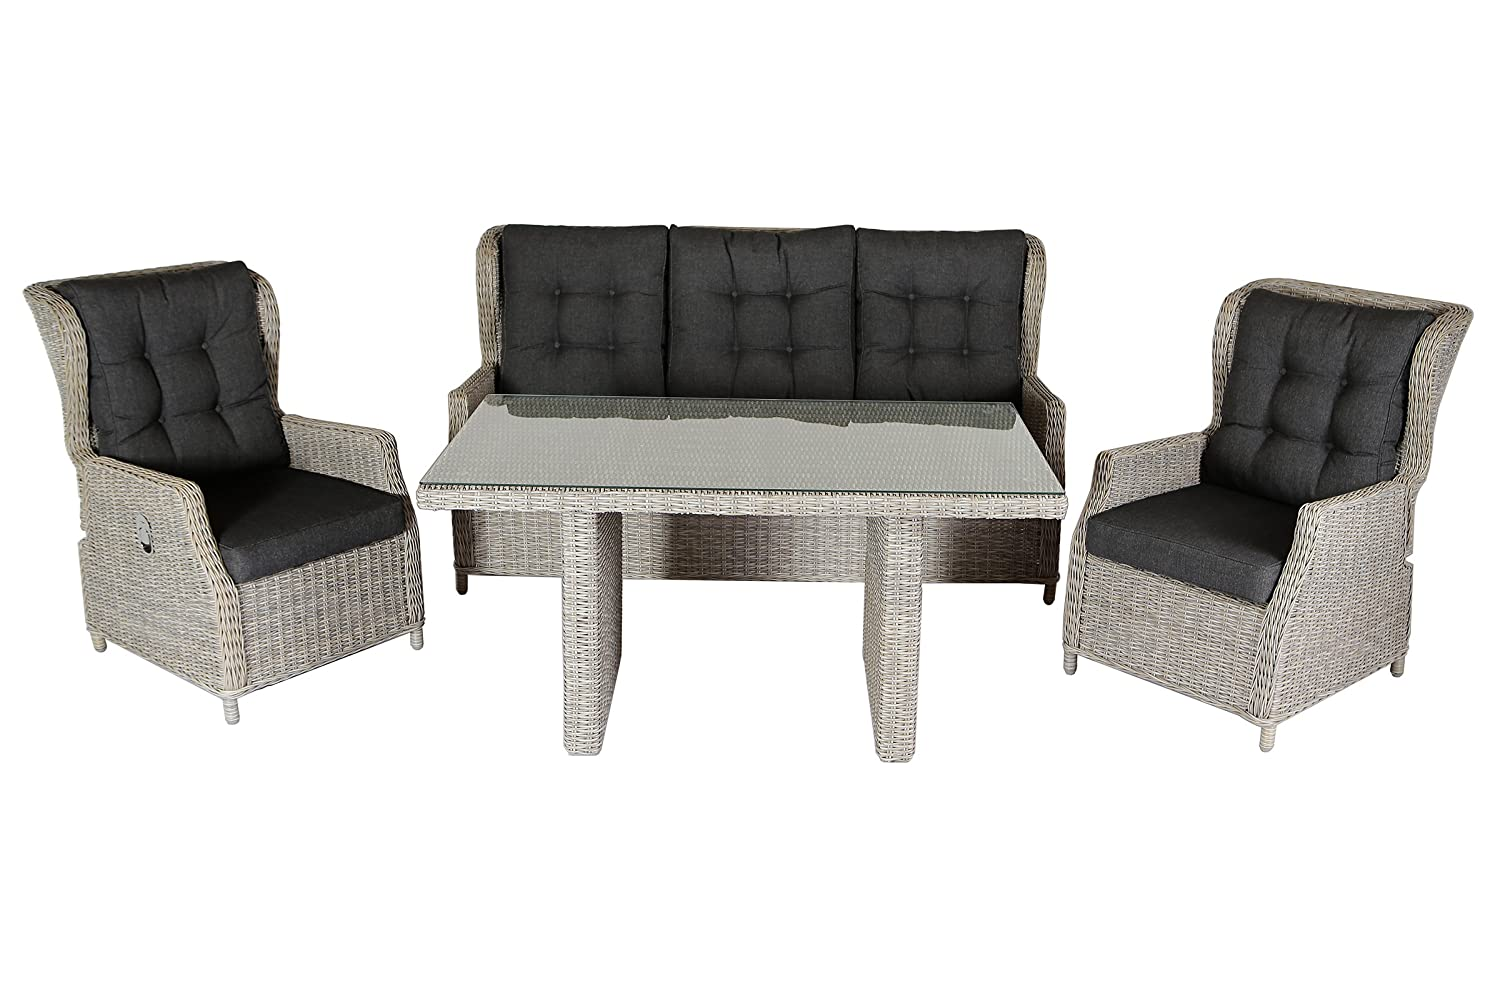 villana exklusive lounge set gartenlounge aus hochwertigem polyrattan und aluminium in braun f r. Black Bedroom Furniture Sets. Home Design Ideas